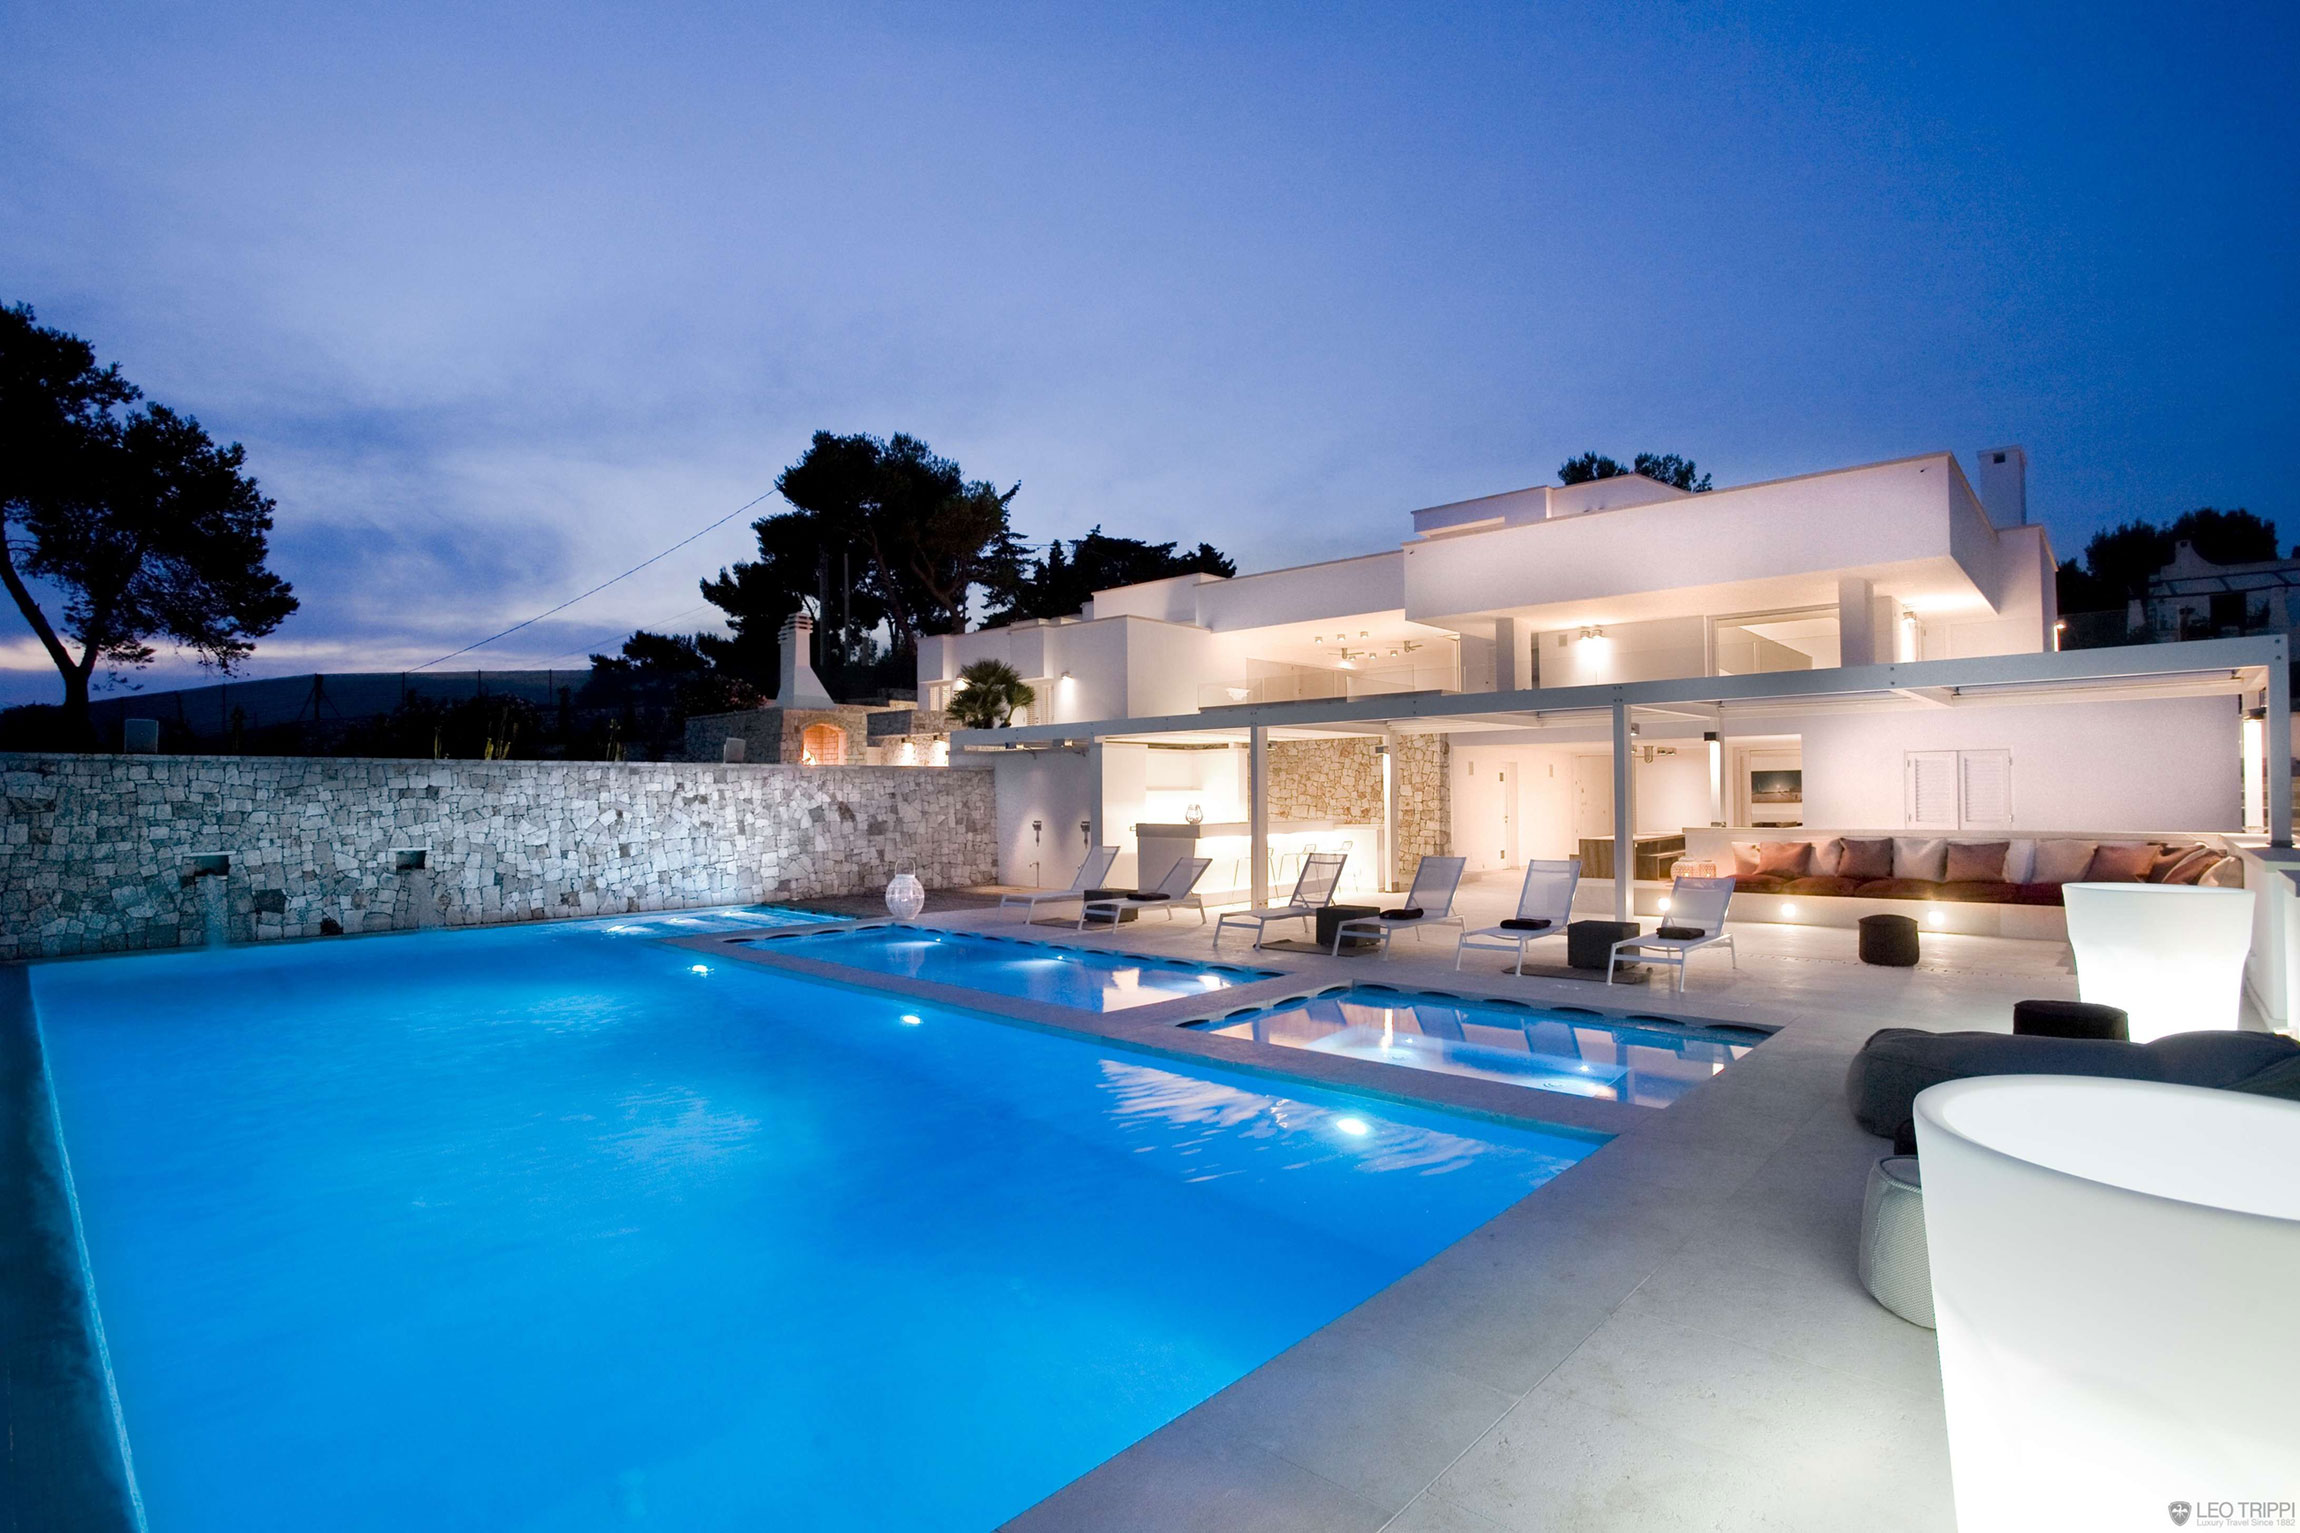 Luxury rental villa in puglia italy villa bianca homedezen for Case modernissime